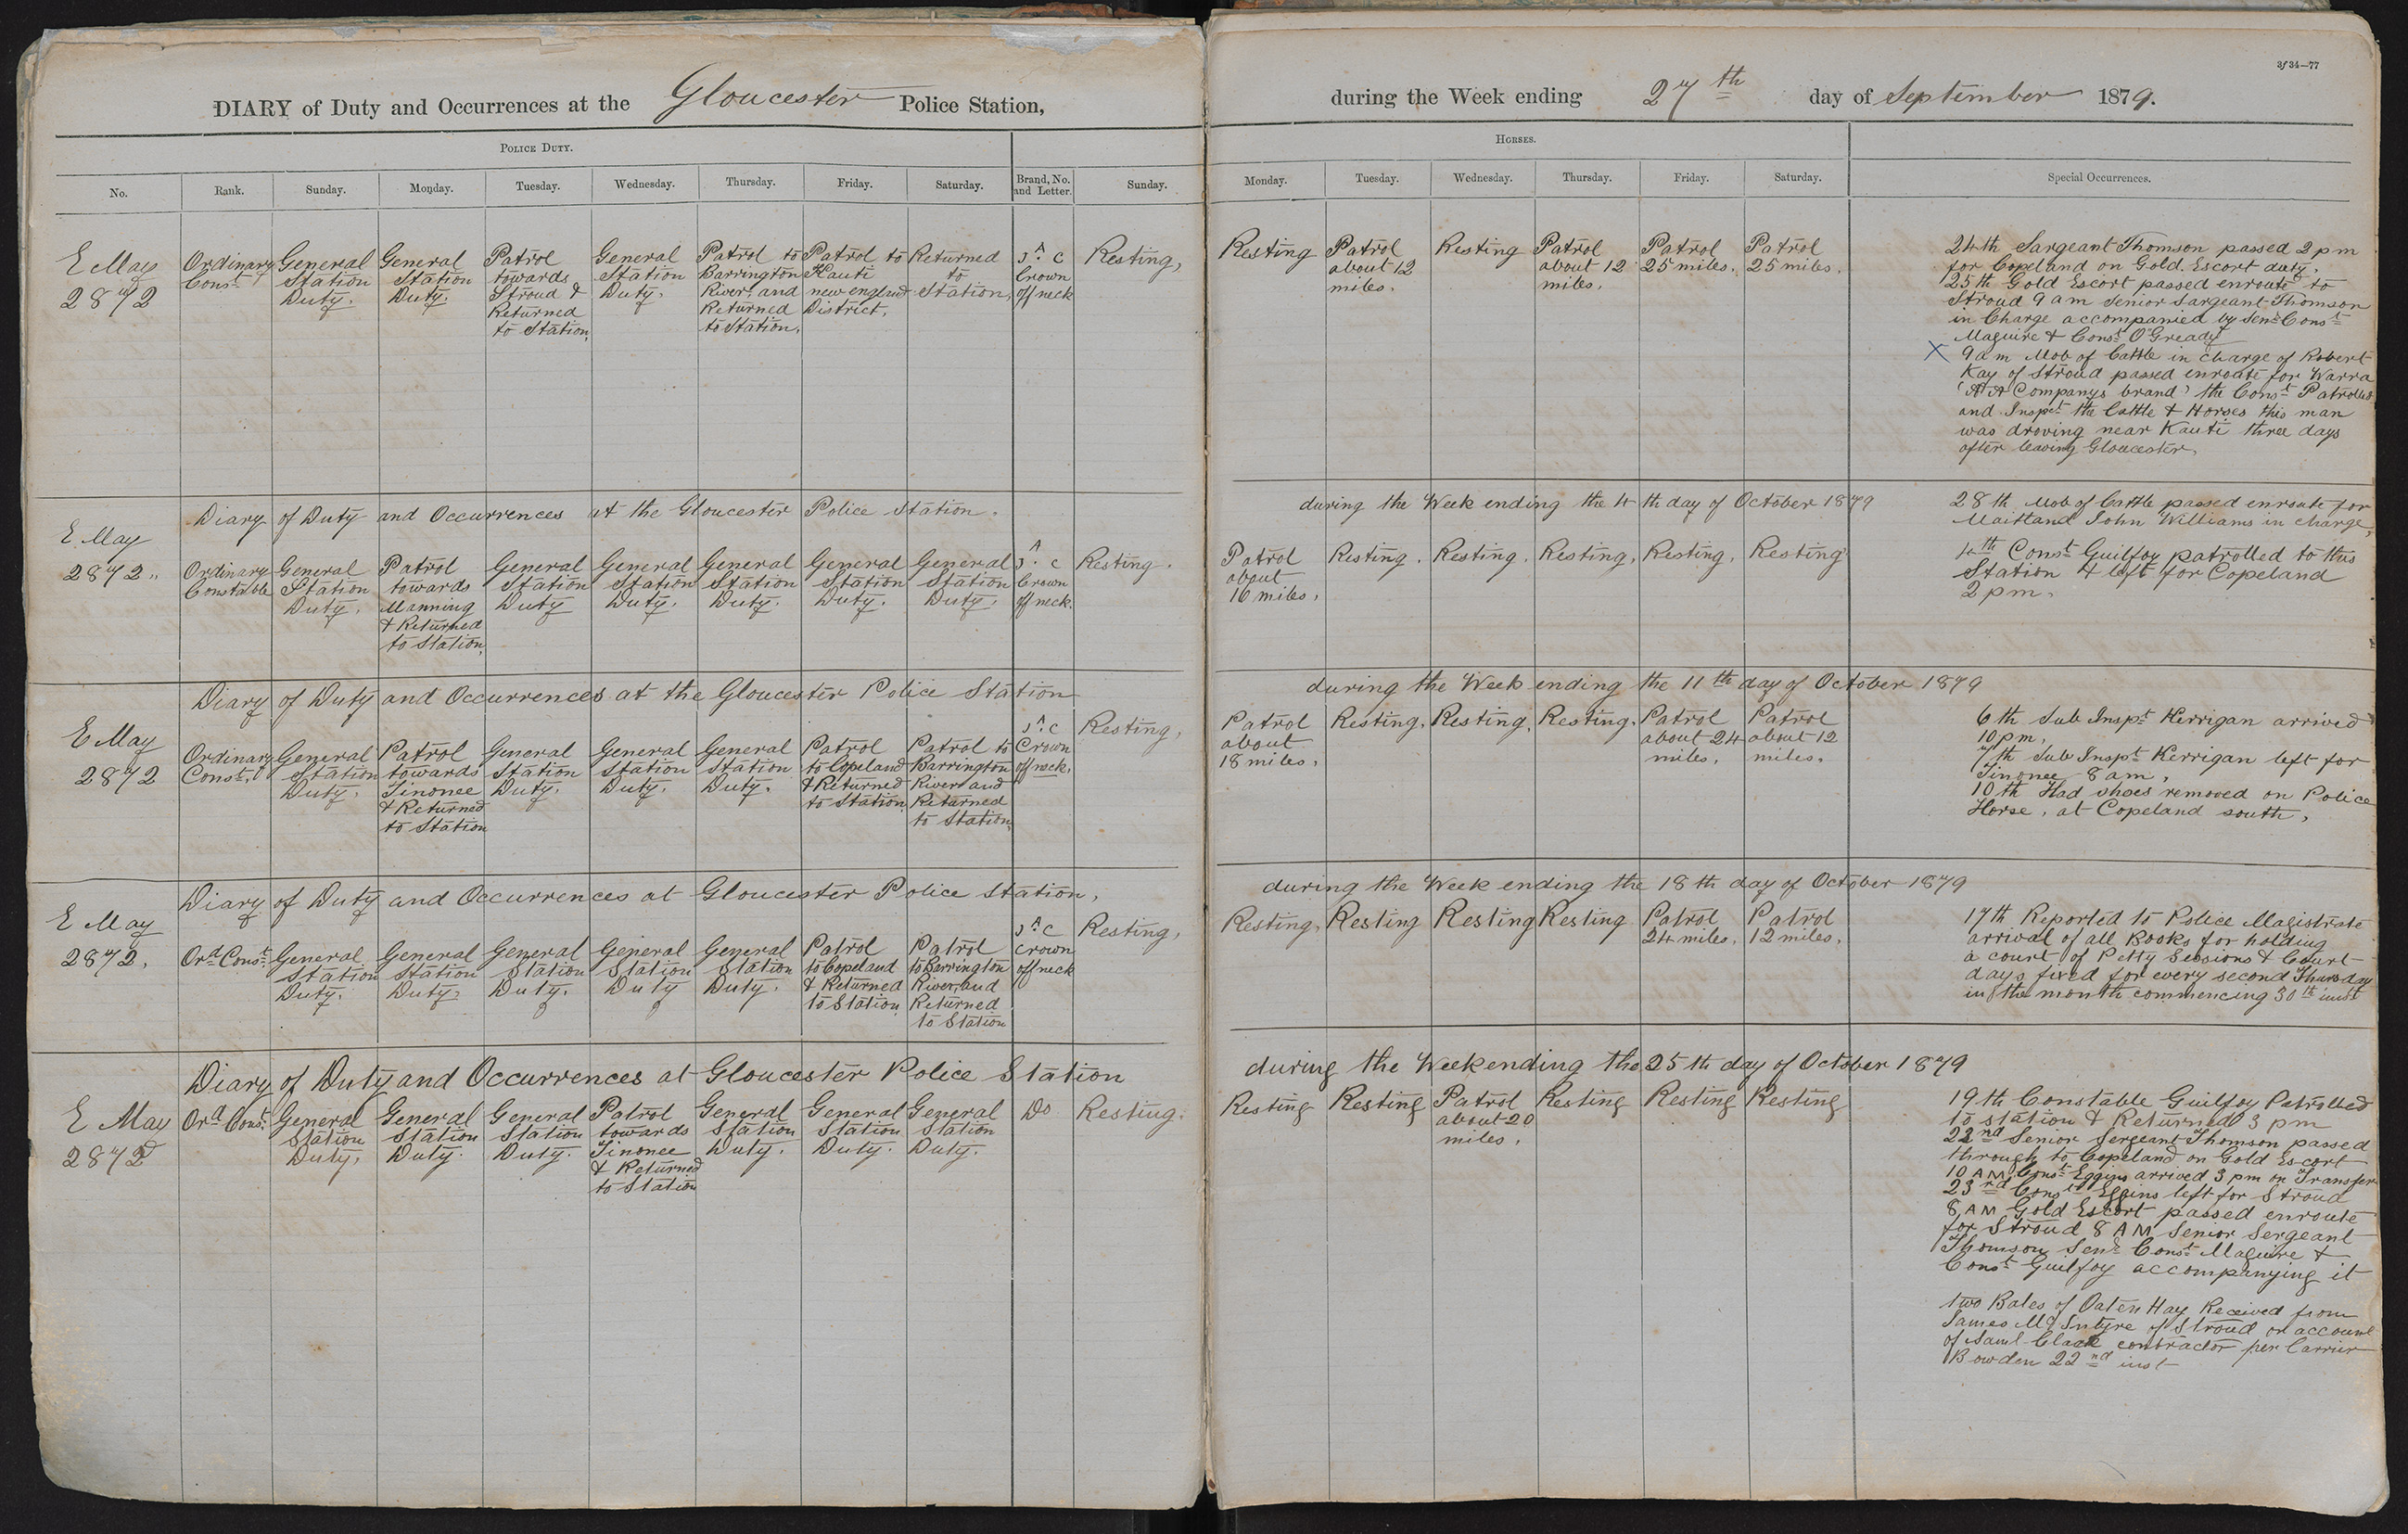 Diary of duty and occurrences at the Gloucester Police Station during the week ending the 27th day of September 1879